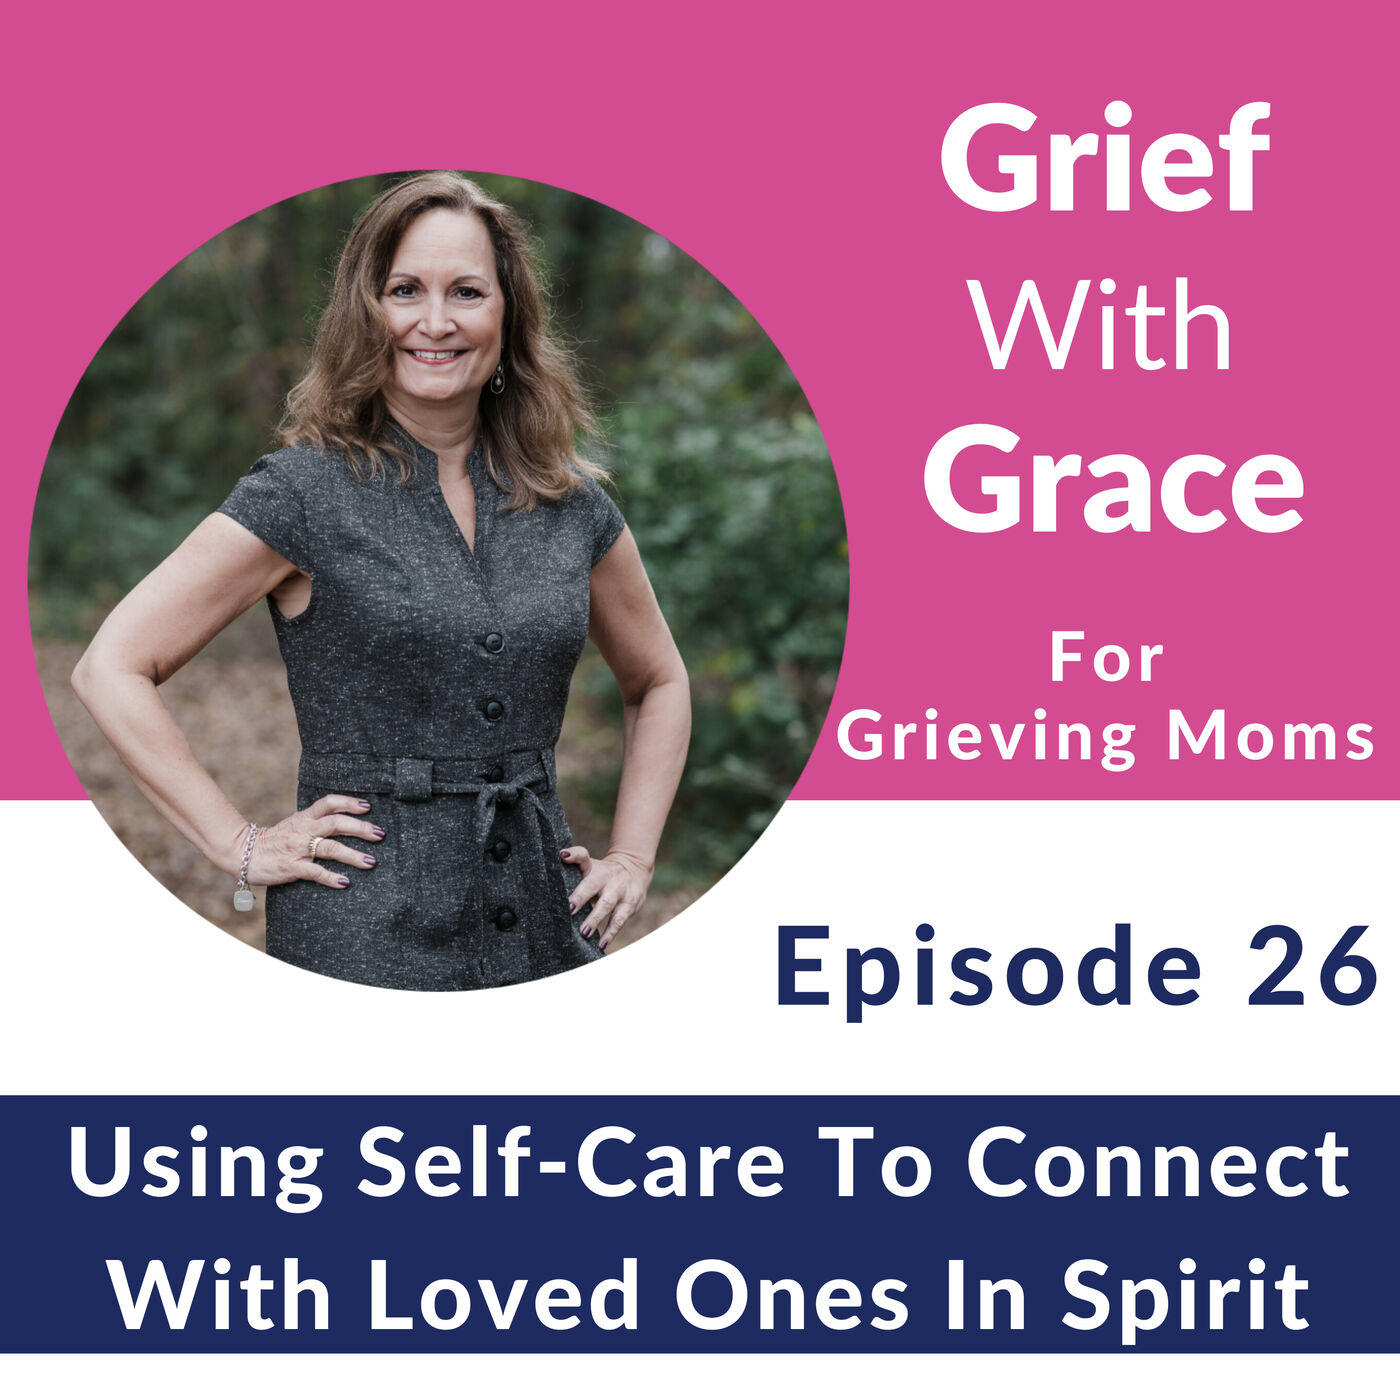 26. Using Self-Care To Connect With Loved Ones In Spirit